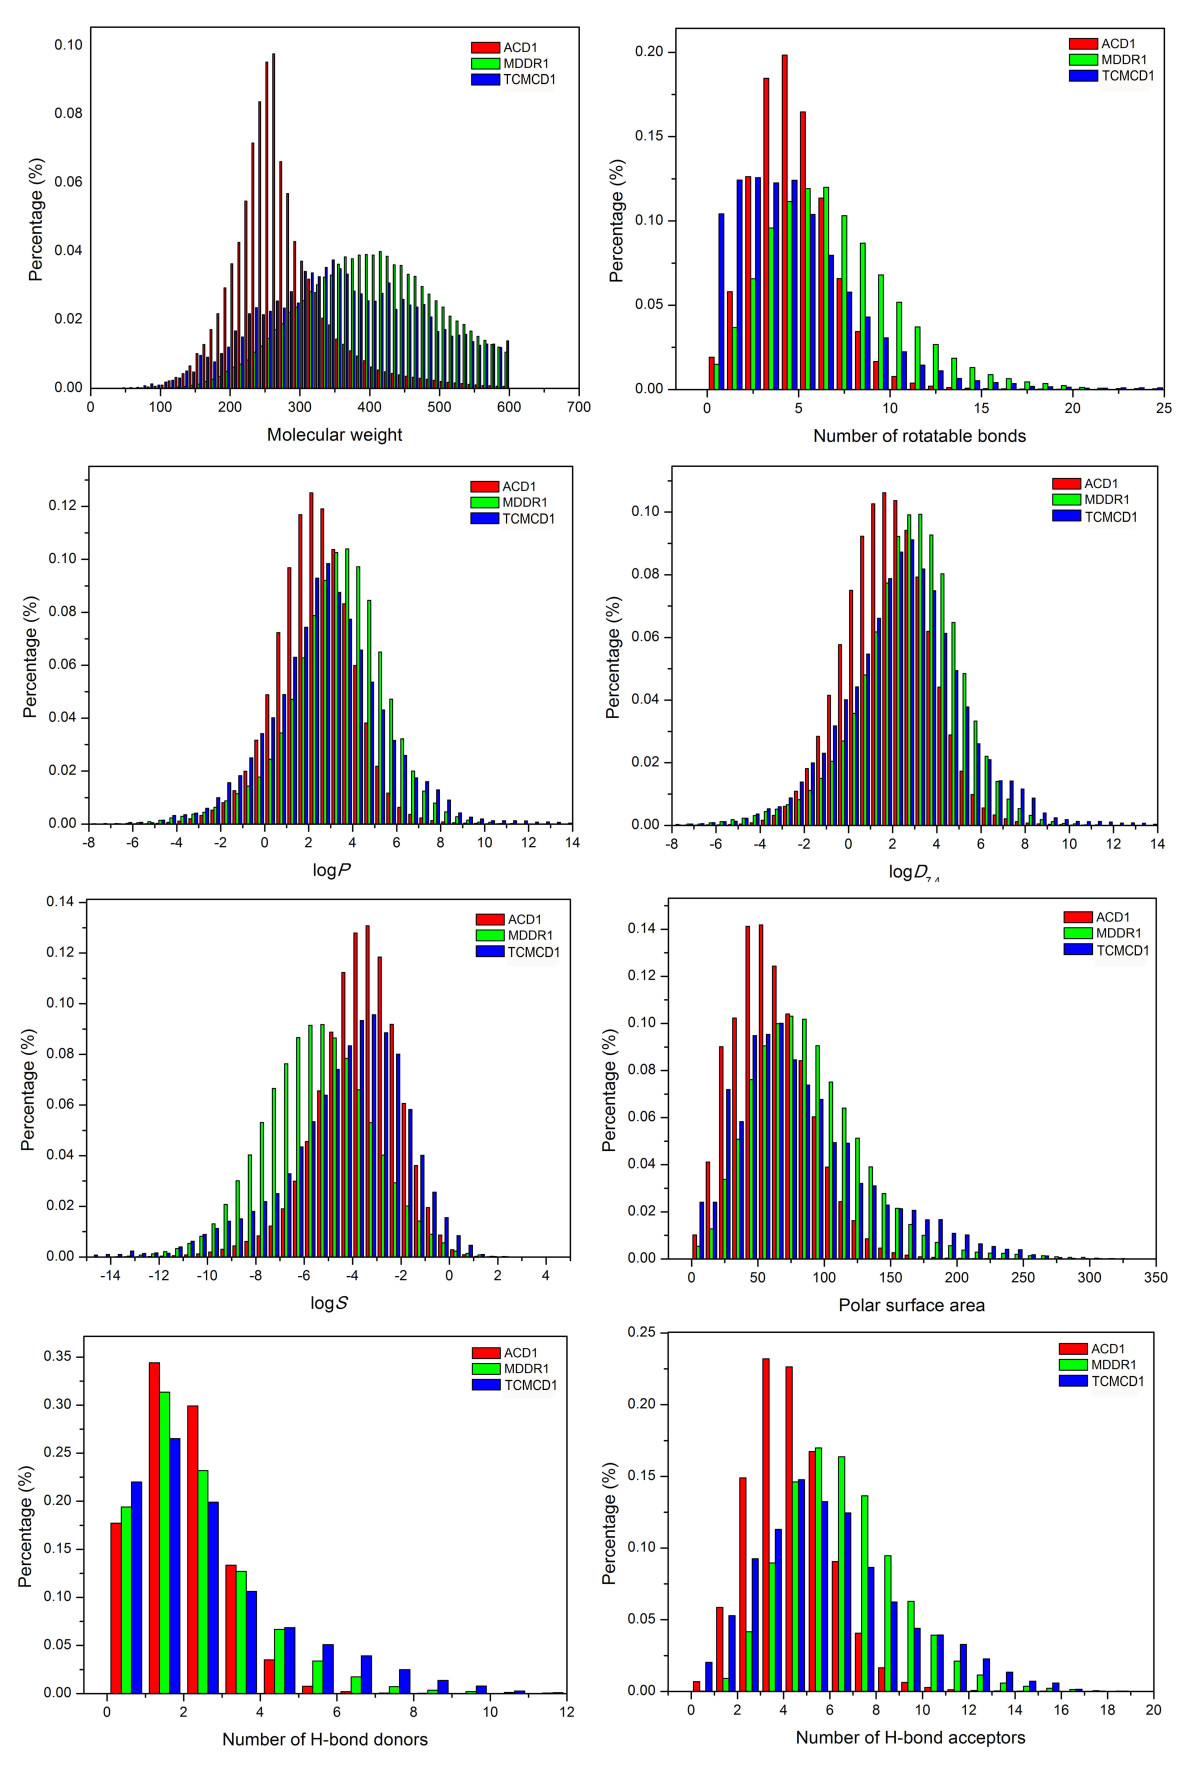 http://static-content.springer.com/image/art%3A10.1186%2F1758-2946-4-31/MediaObjects/13321_2012_Article_351_Fig1_HTML.jpg